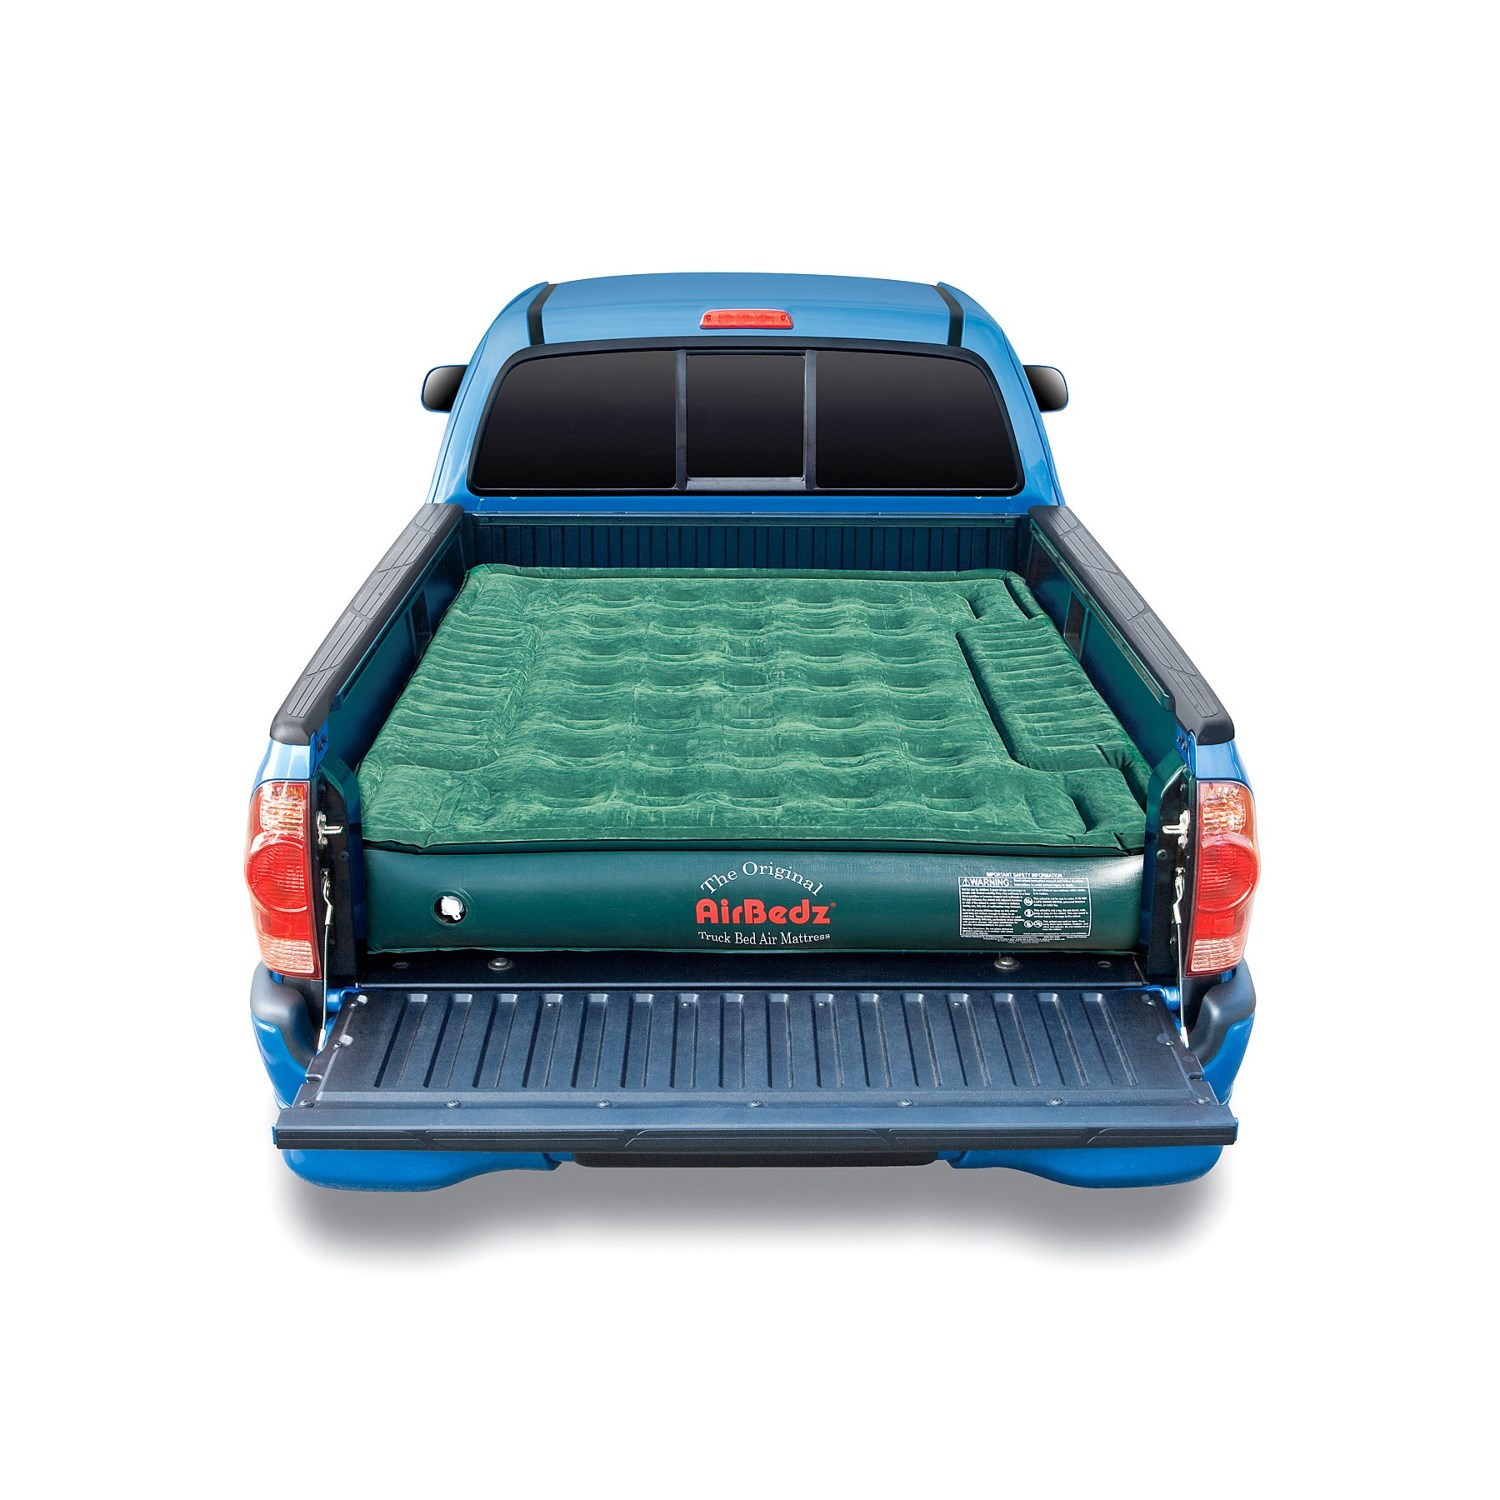 Airbedz Lite Truck Bed Air Mattress Full Size 8482n Save 20